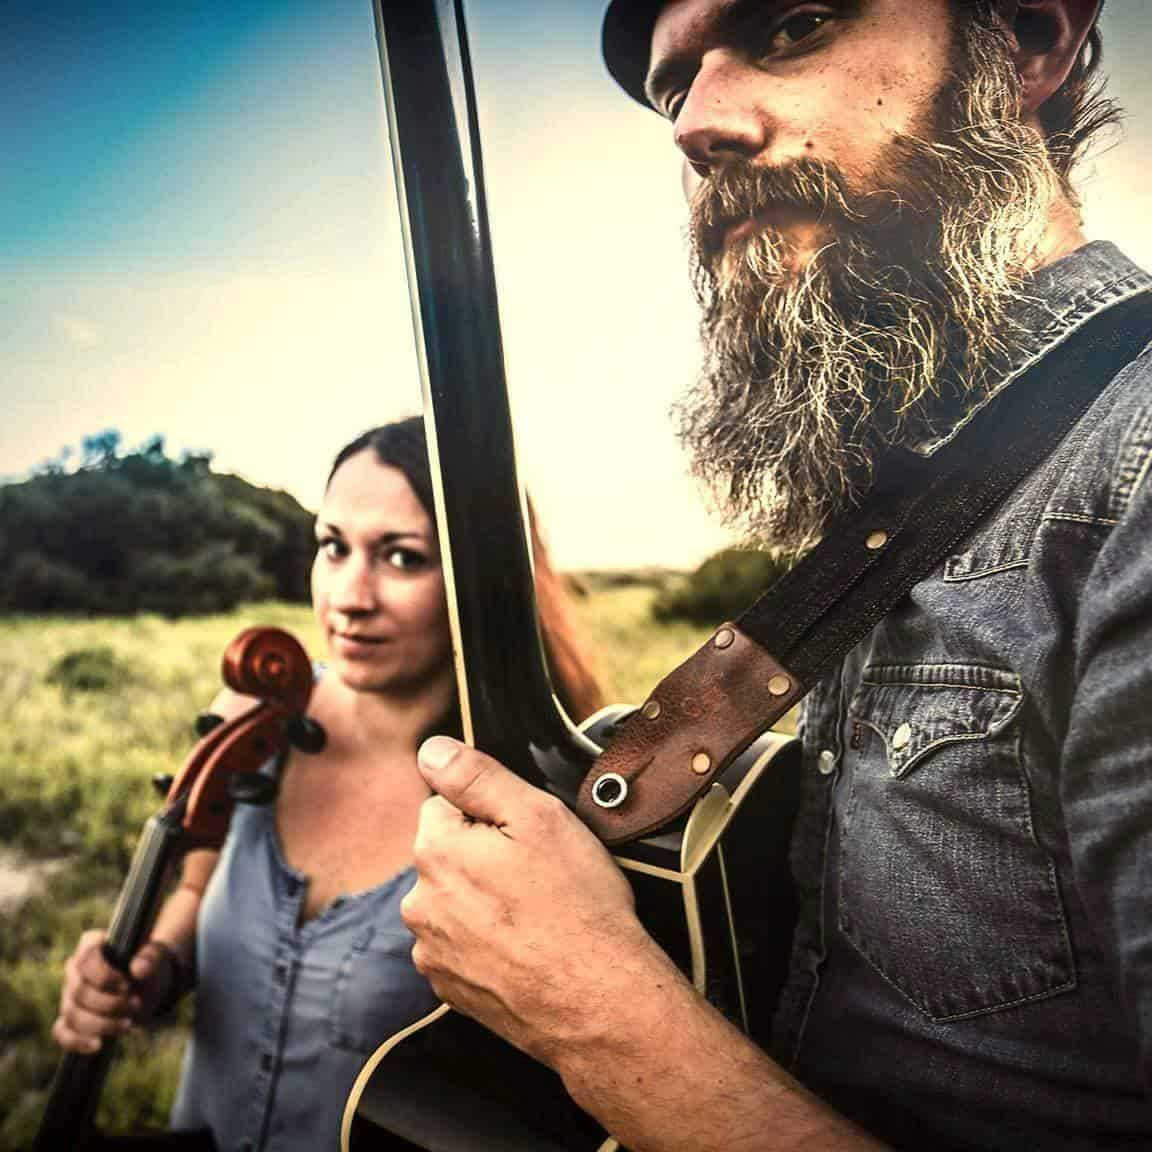 Man and woman stand next to each other holding their instruments.